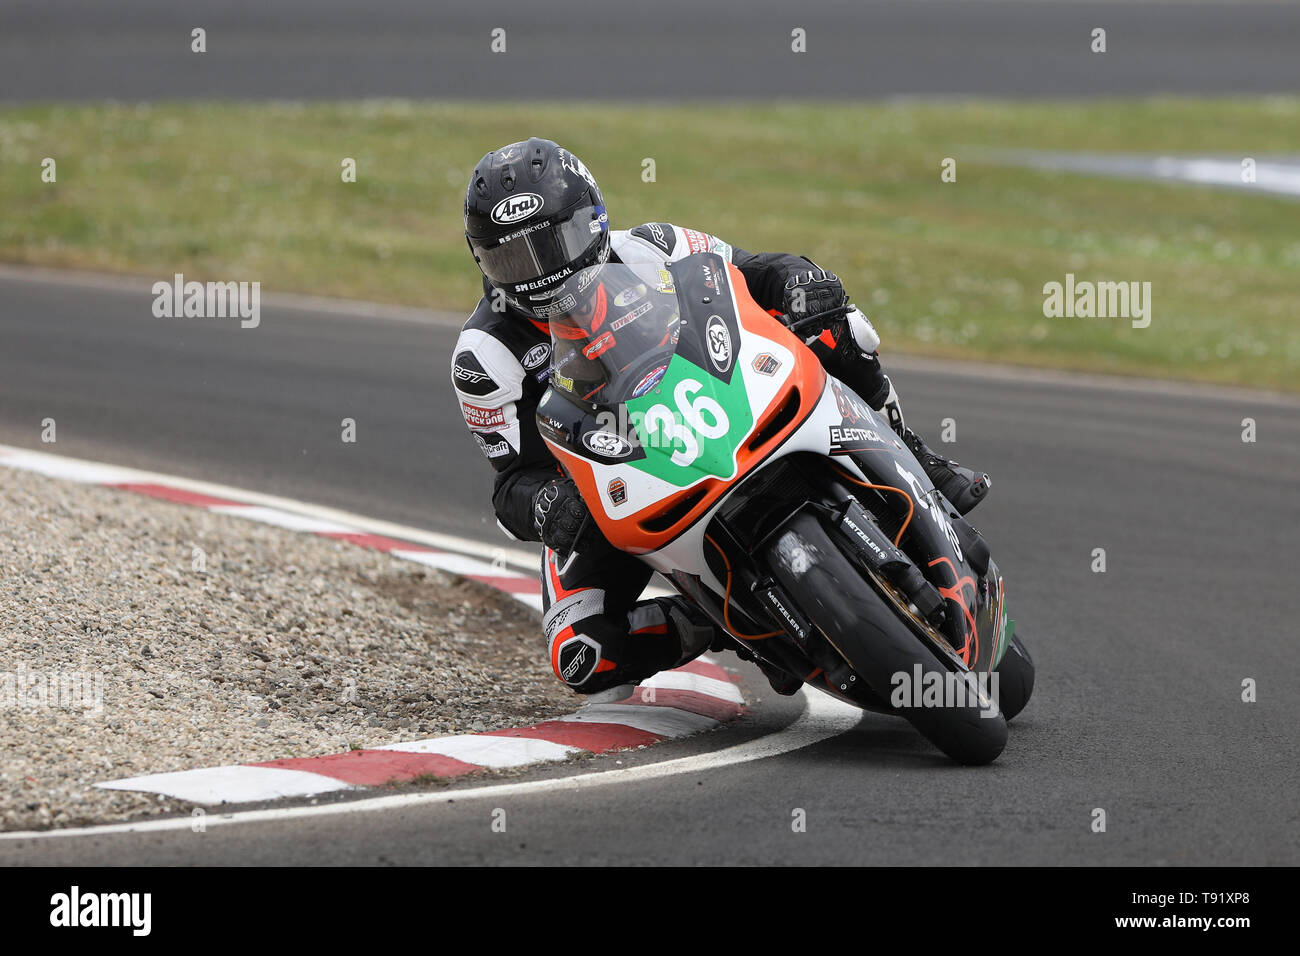 Portrush, Northern Ireland. 16th May, 2019. International North West 200 Motorcycle road racing, Thursday practice and evening racing; Jamie Coward on the KTS Racing Kawasaki during the SuperTwins qualifying session was 3rd quickest behind McGee and Irwin Credit: Action Plus Sports/Alamy Live News - Stock Image